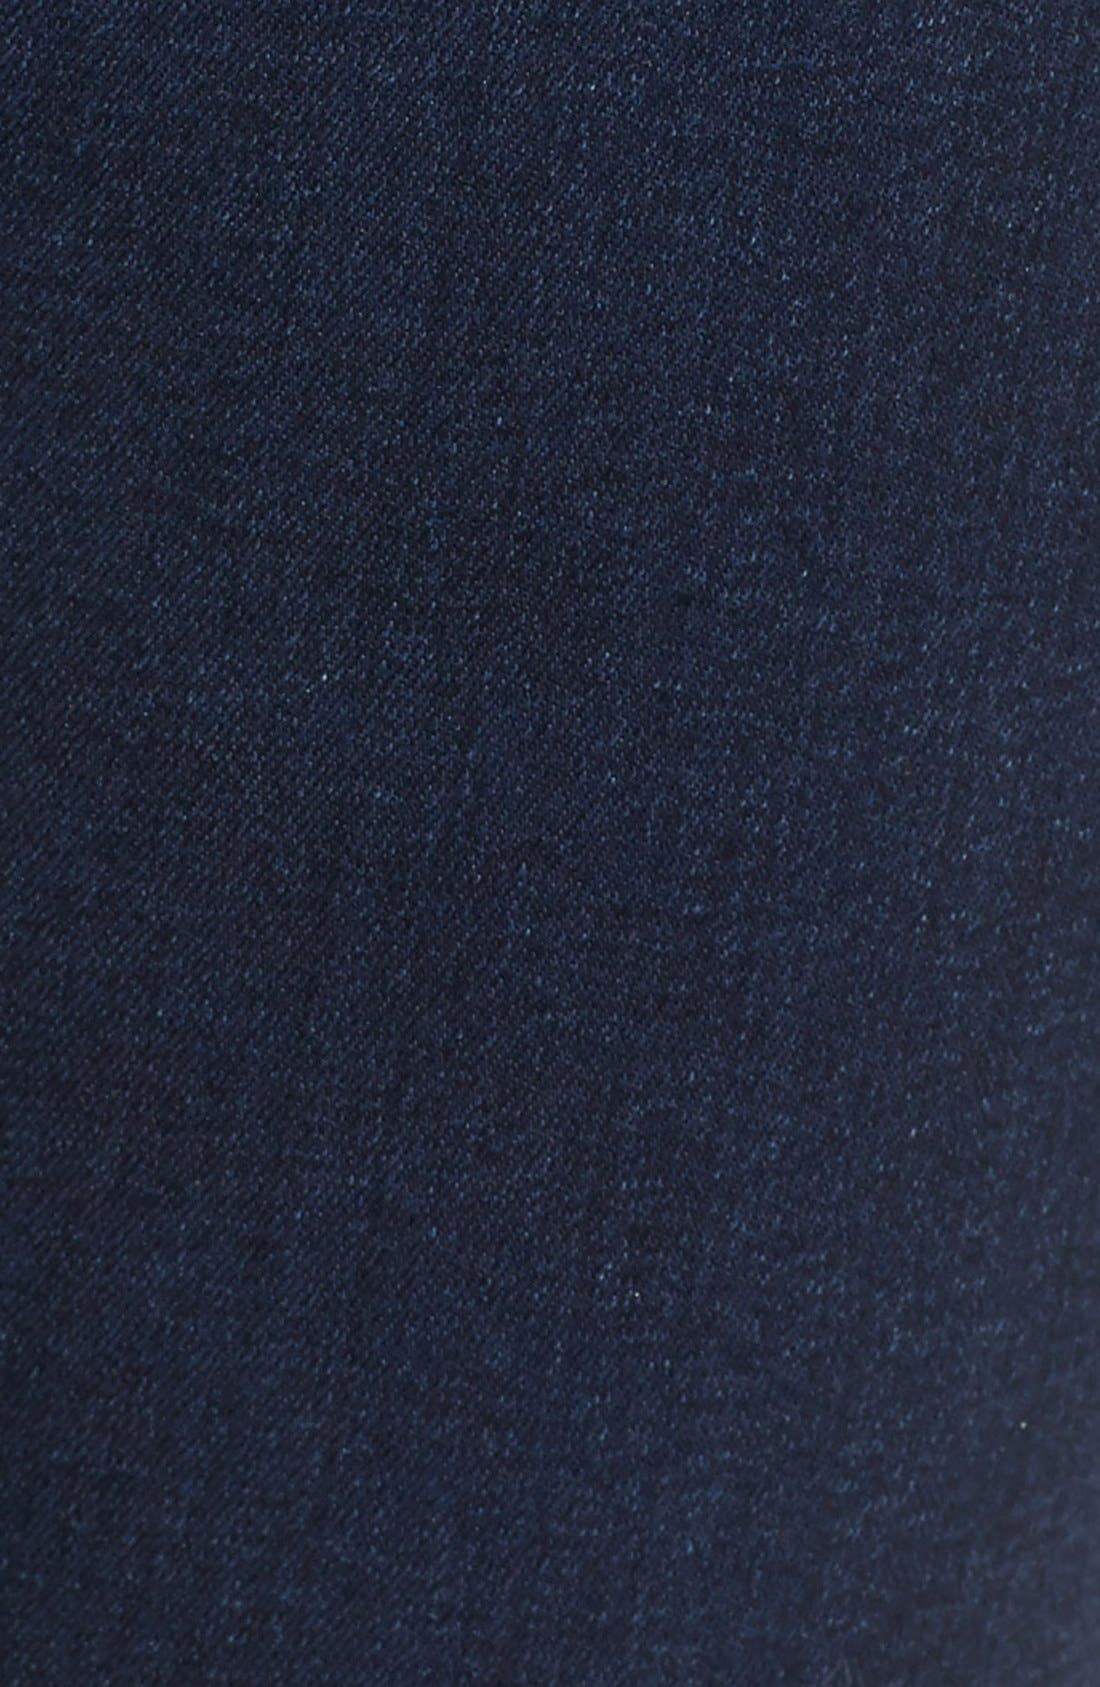 b(air) Ankle Skinny Jeans,                             Alternate thumbnail 5, color,                             400